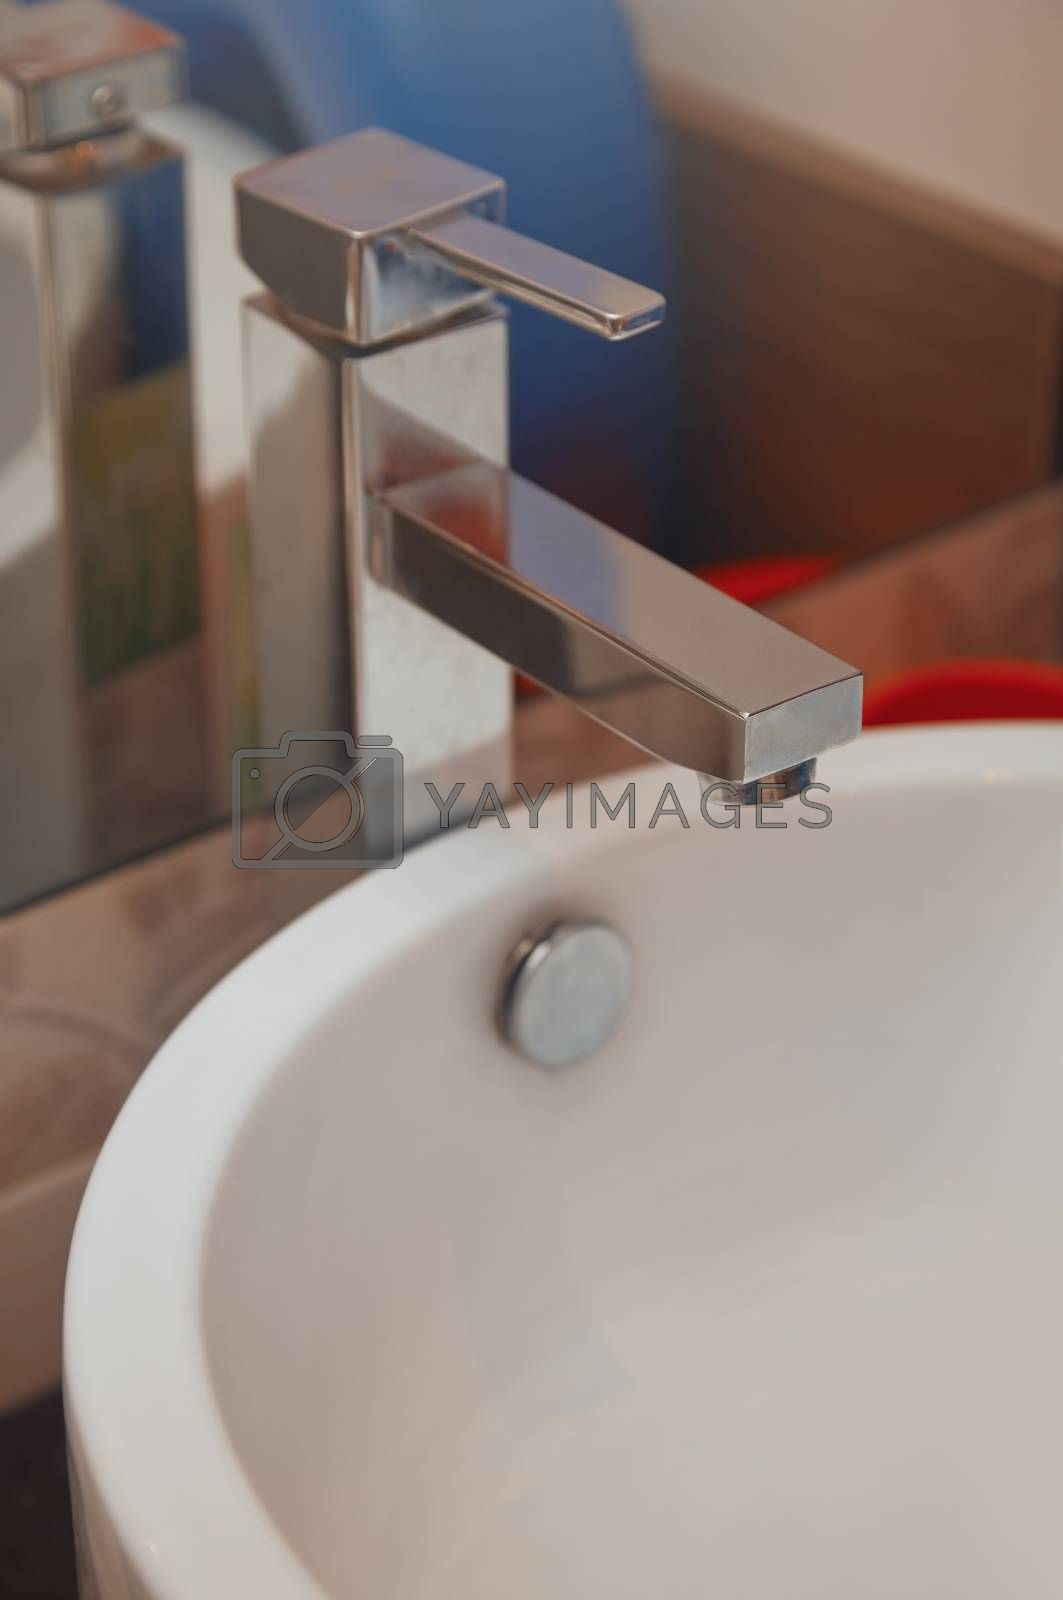 Sink and water tap. Horizontal close-up photo